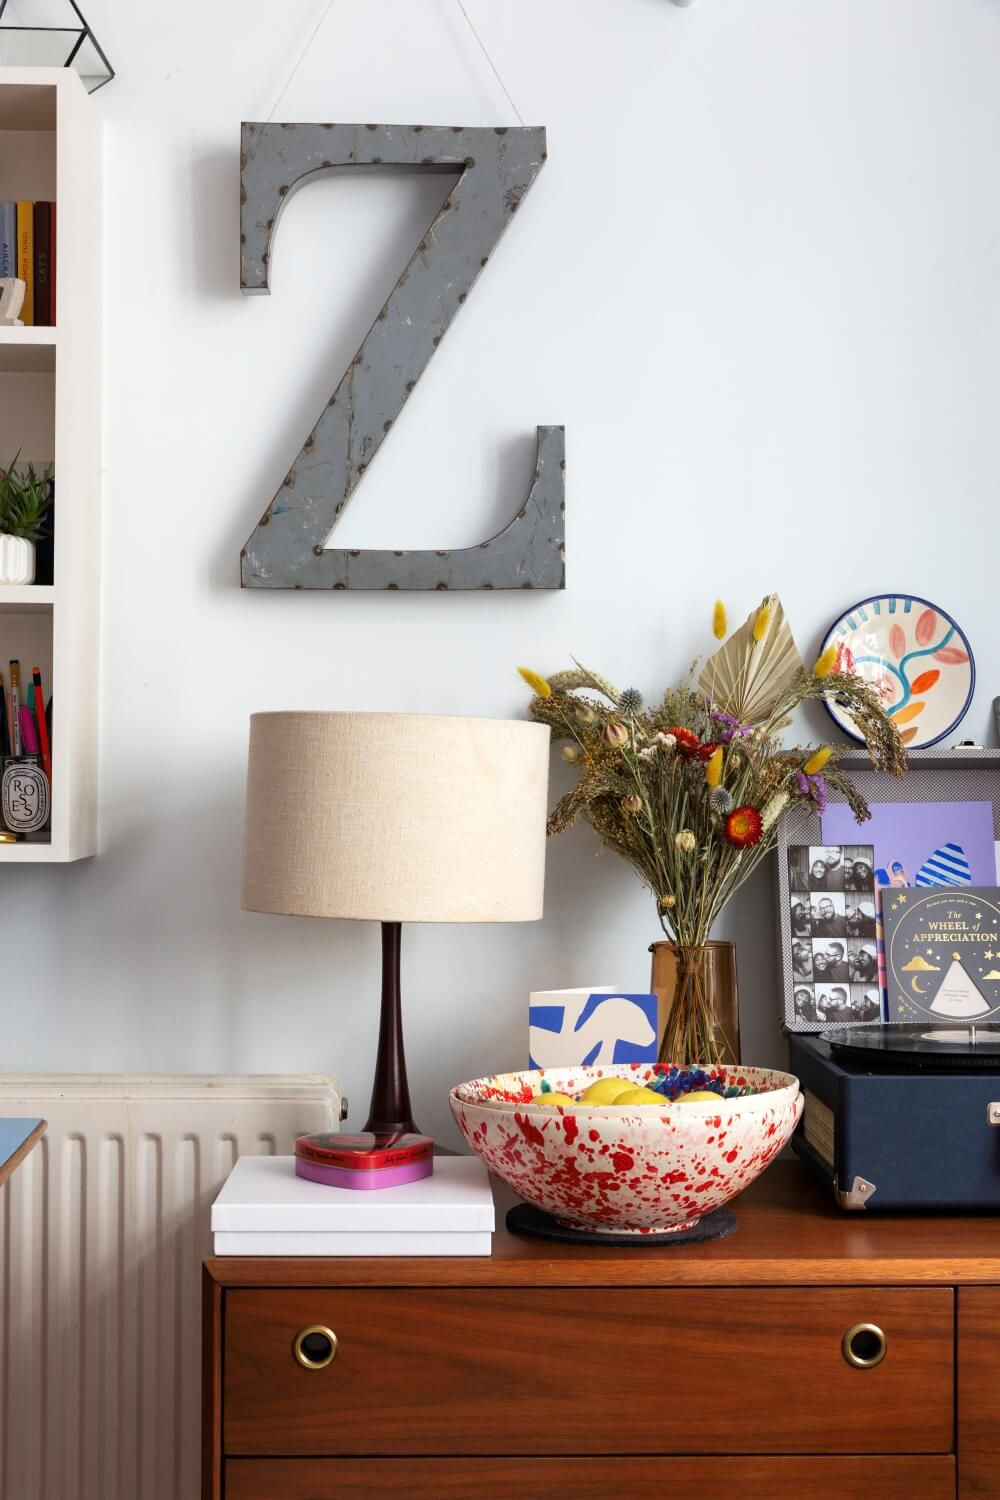 large industrial style Z letter hanging from picture hooks. Z is hanging just above midentury dresser